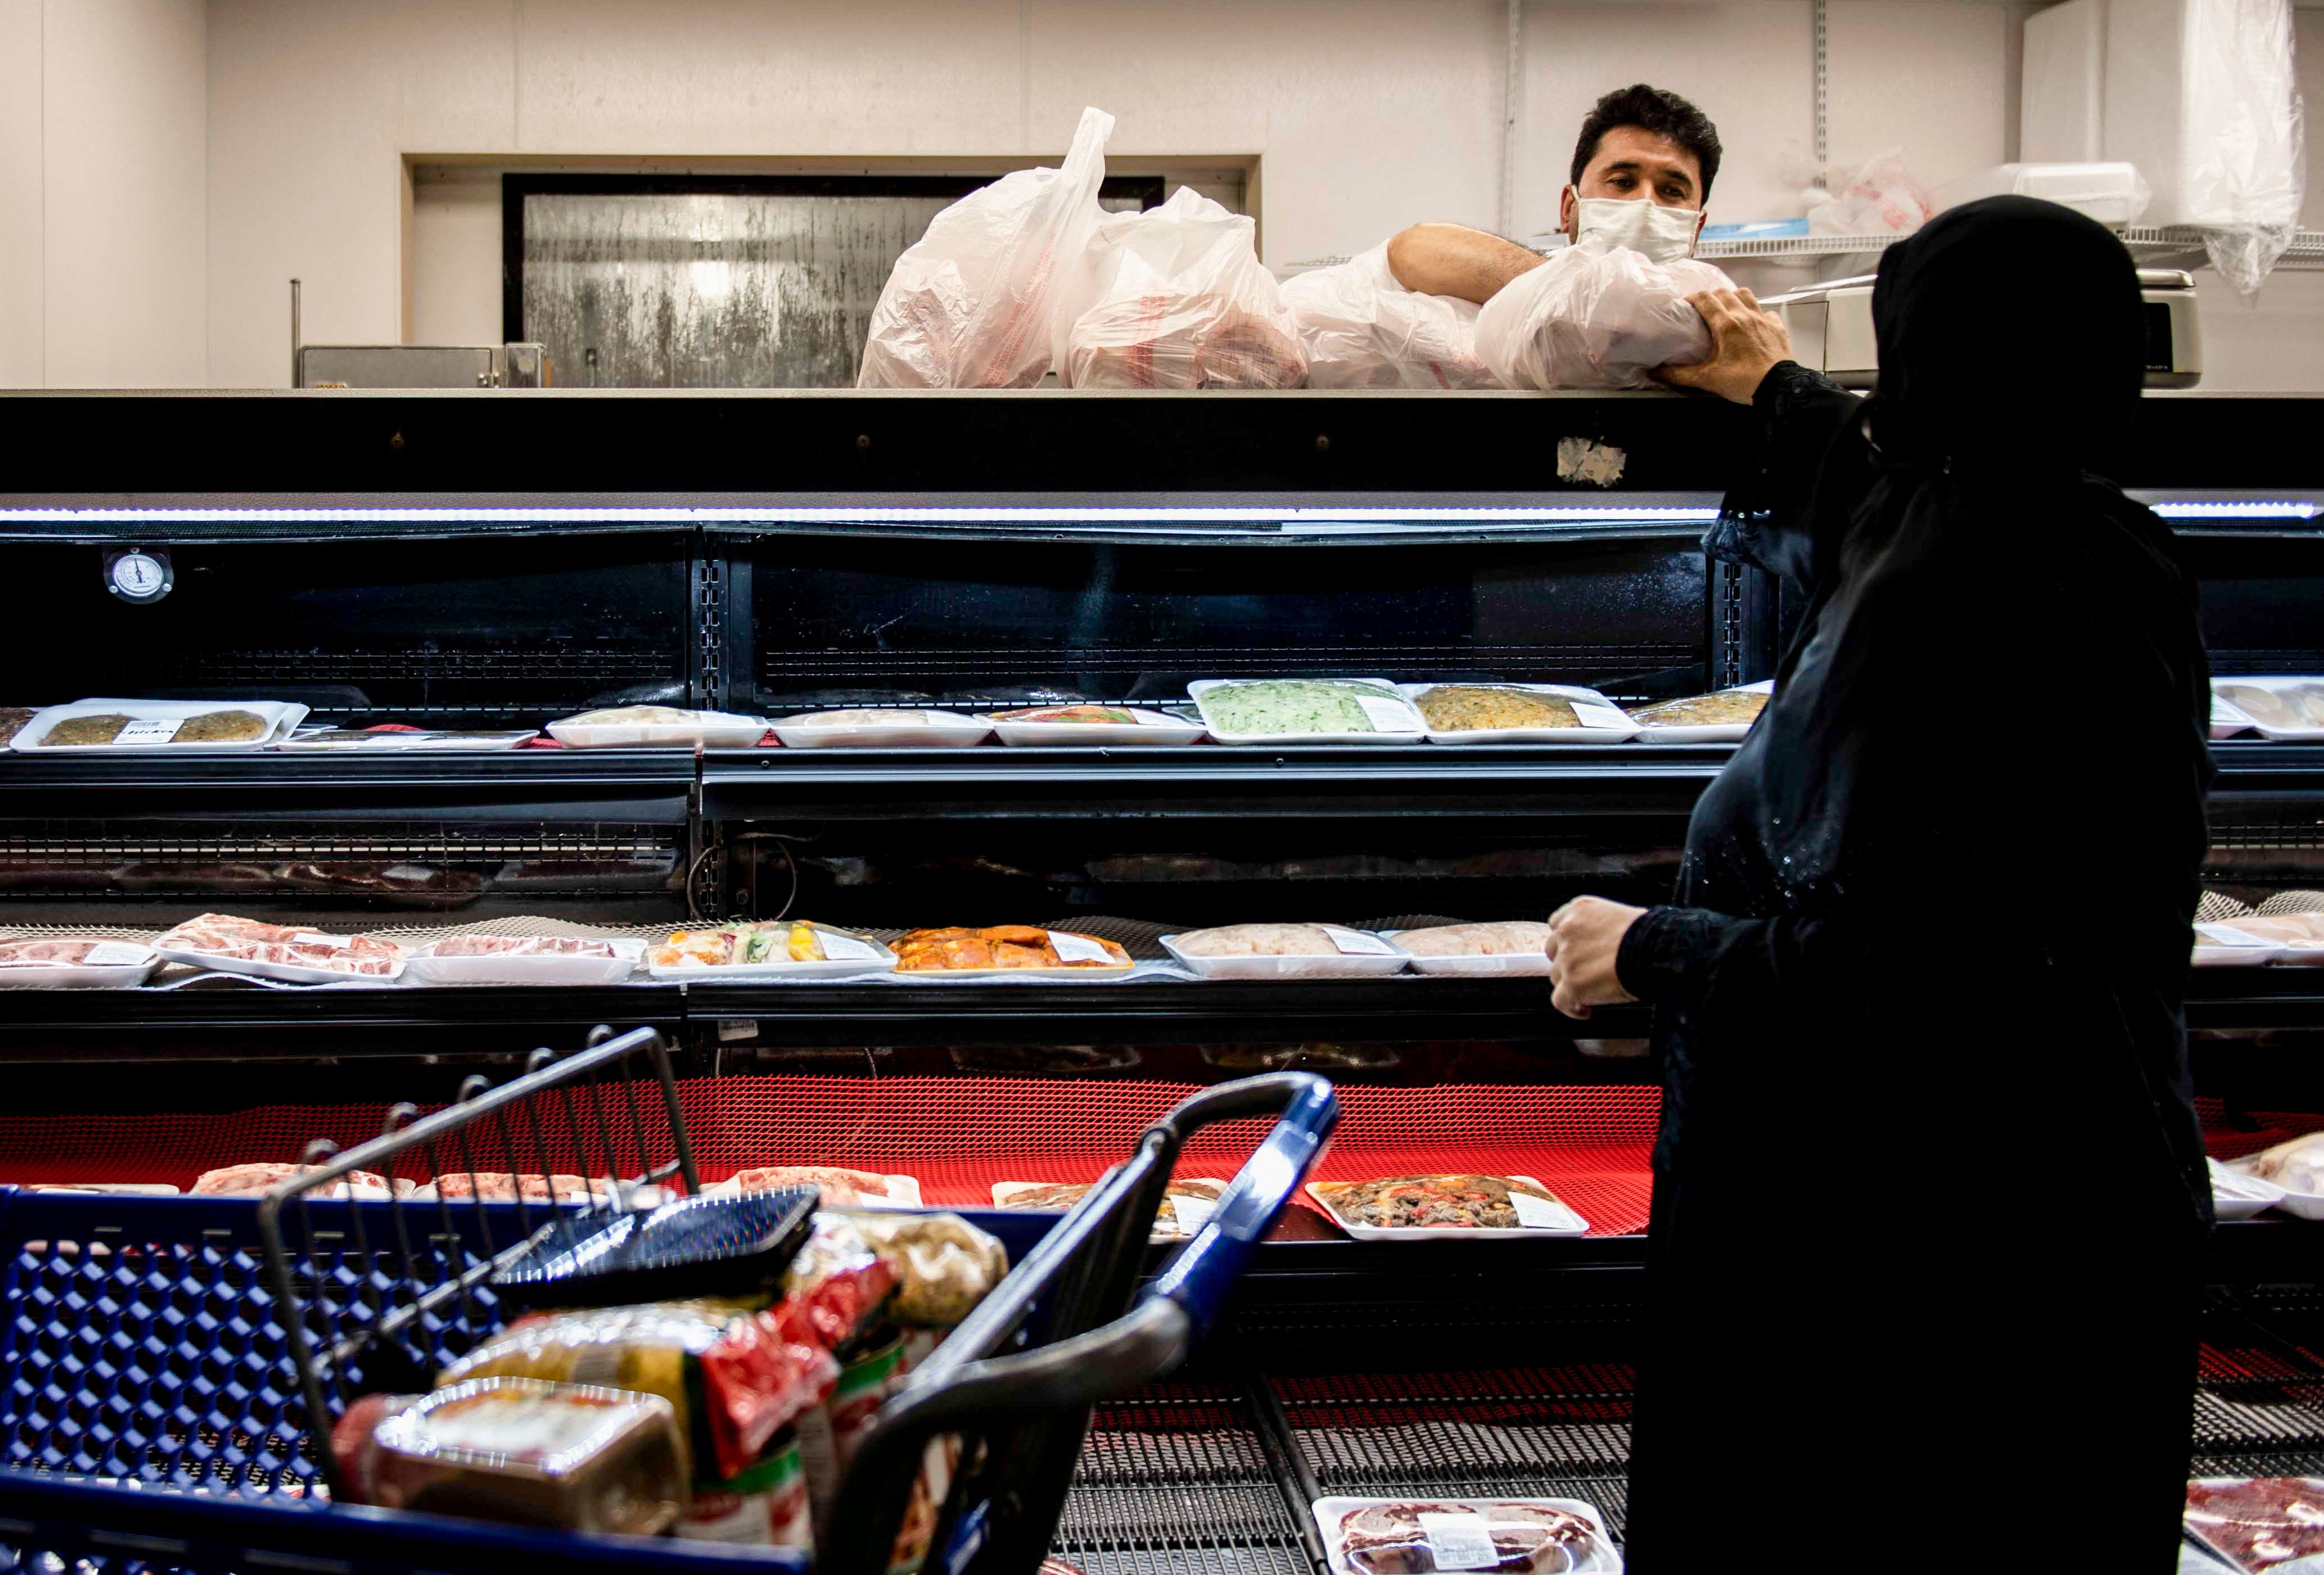 Naim Nazari passes meat to a customer at Alrahmah Mediterranean Grocery in Cordova on Tuesday, Sept. 1, 2020. The Eldahan family has owned the business for 12 years and has served their community in Memphis despite the pandemic and have provided them with essential products.